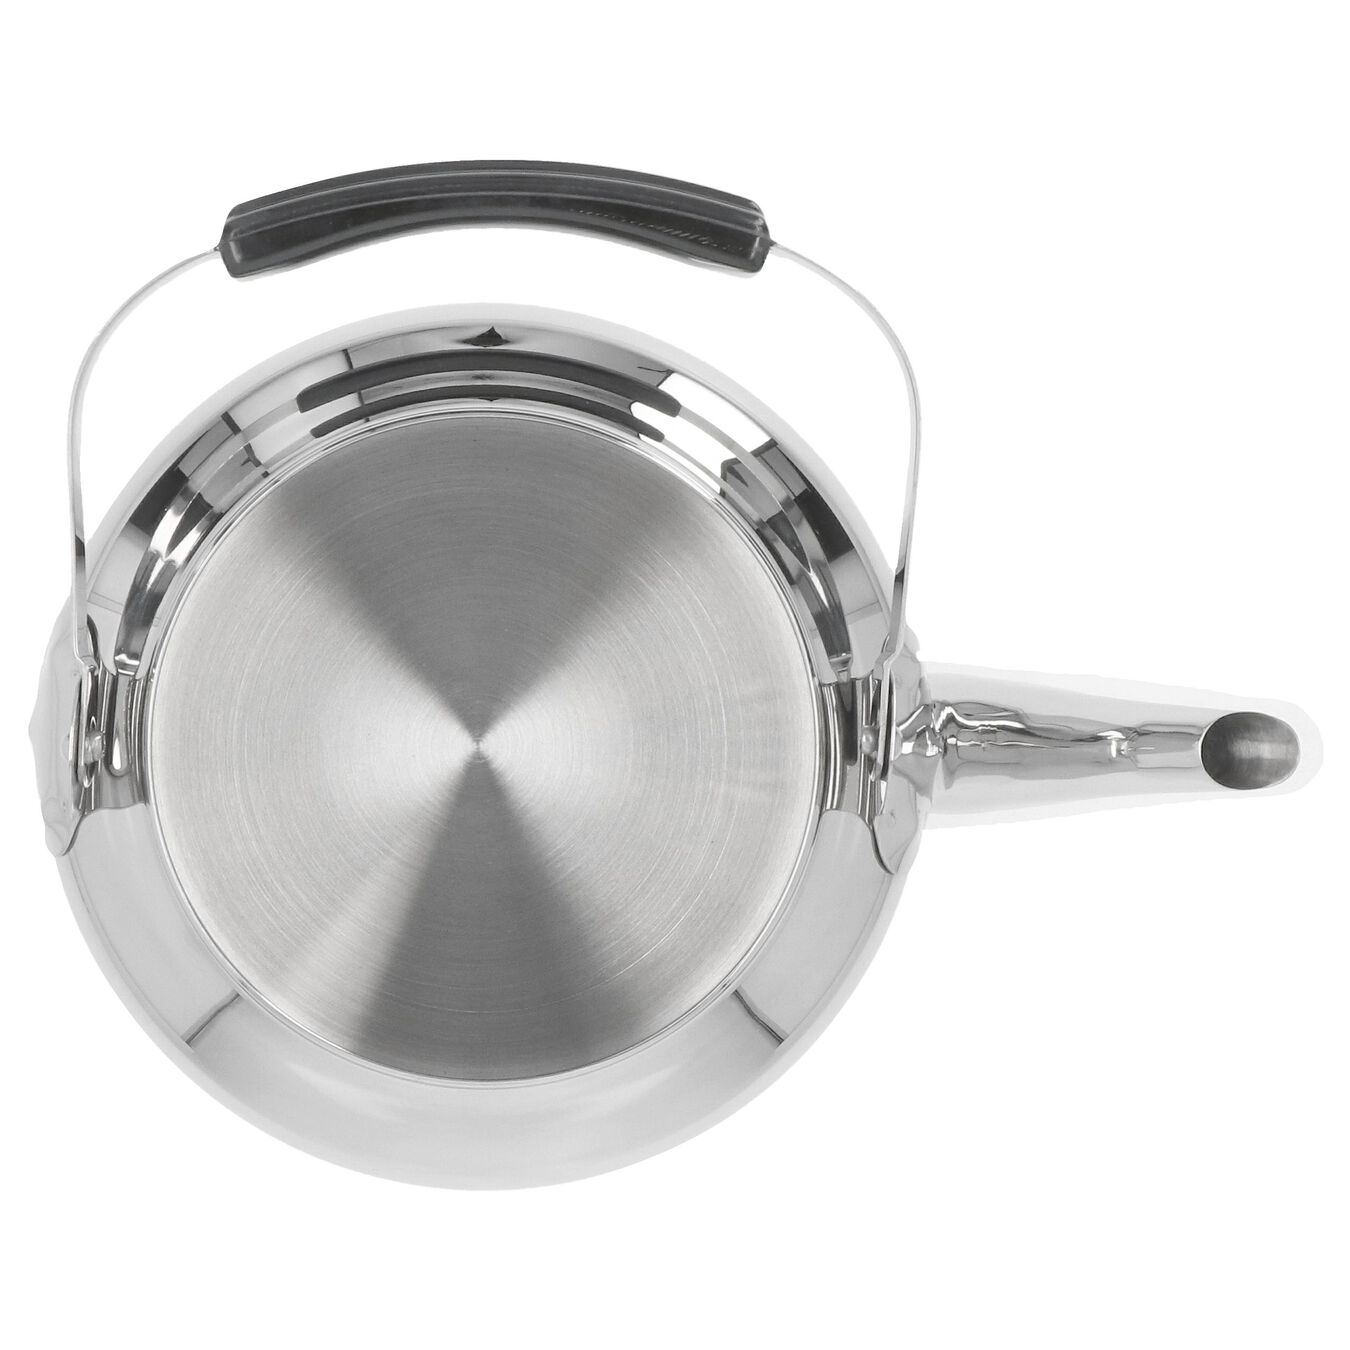 4.2 qt Tea Kettle, 18/10 Stainless Steel ,,large 5